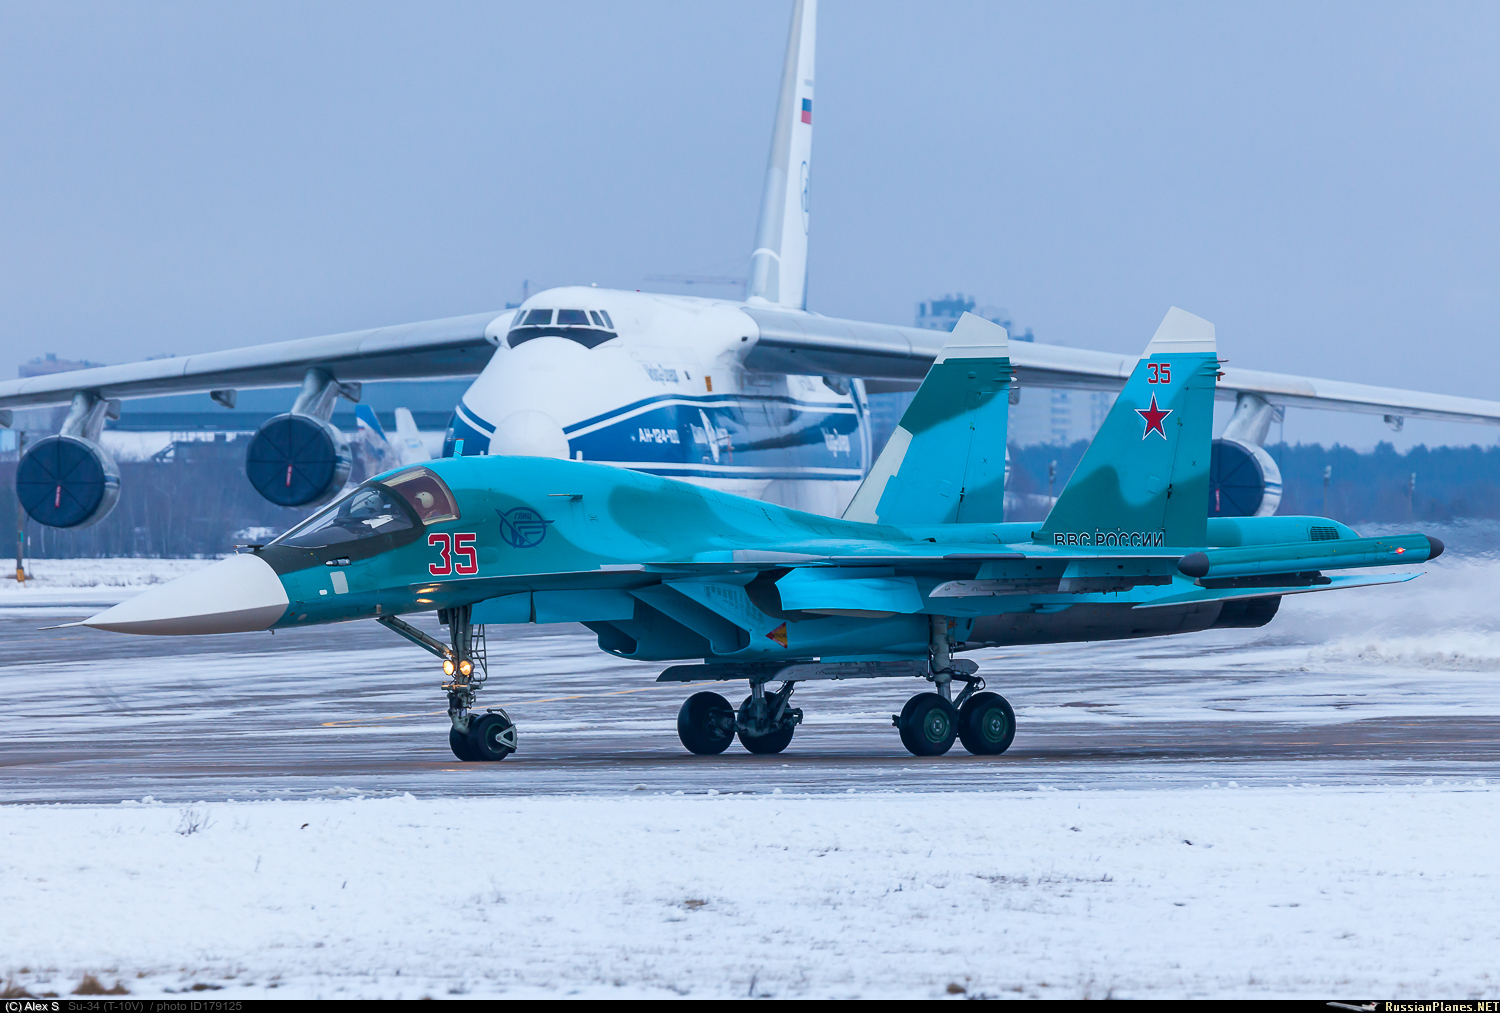 http://russianplanes.net/images/to180000/179125.jpg